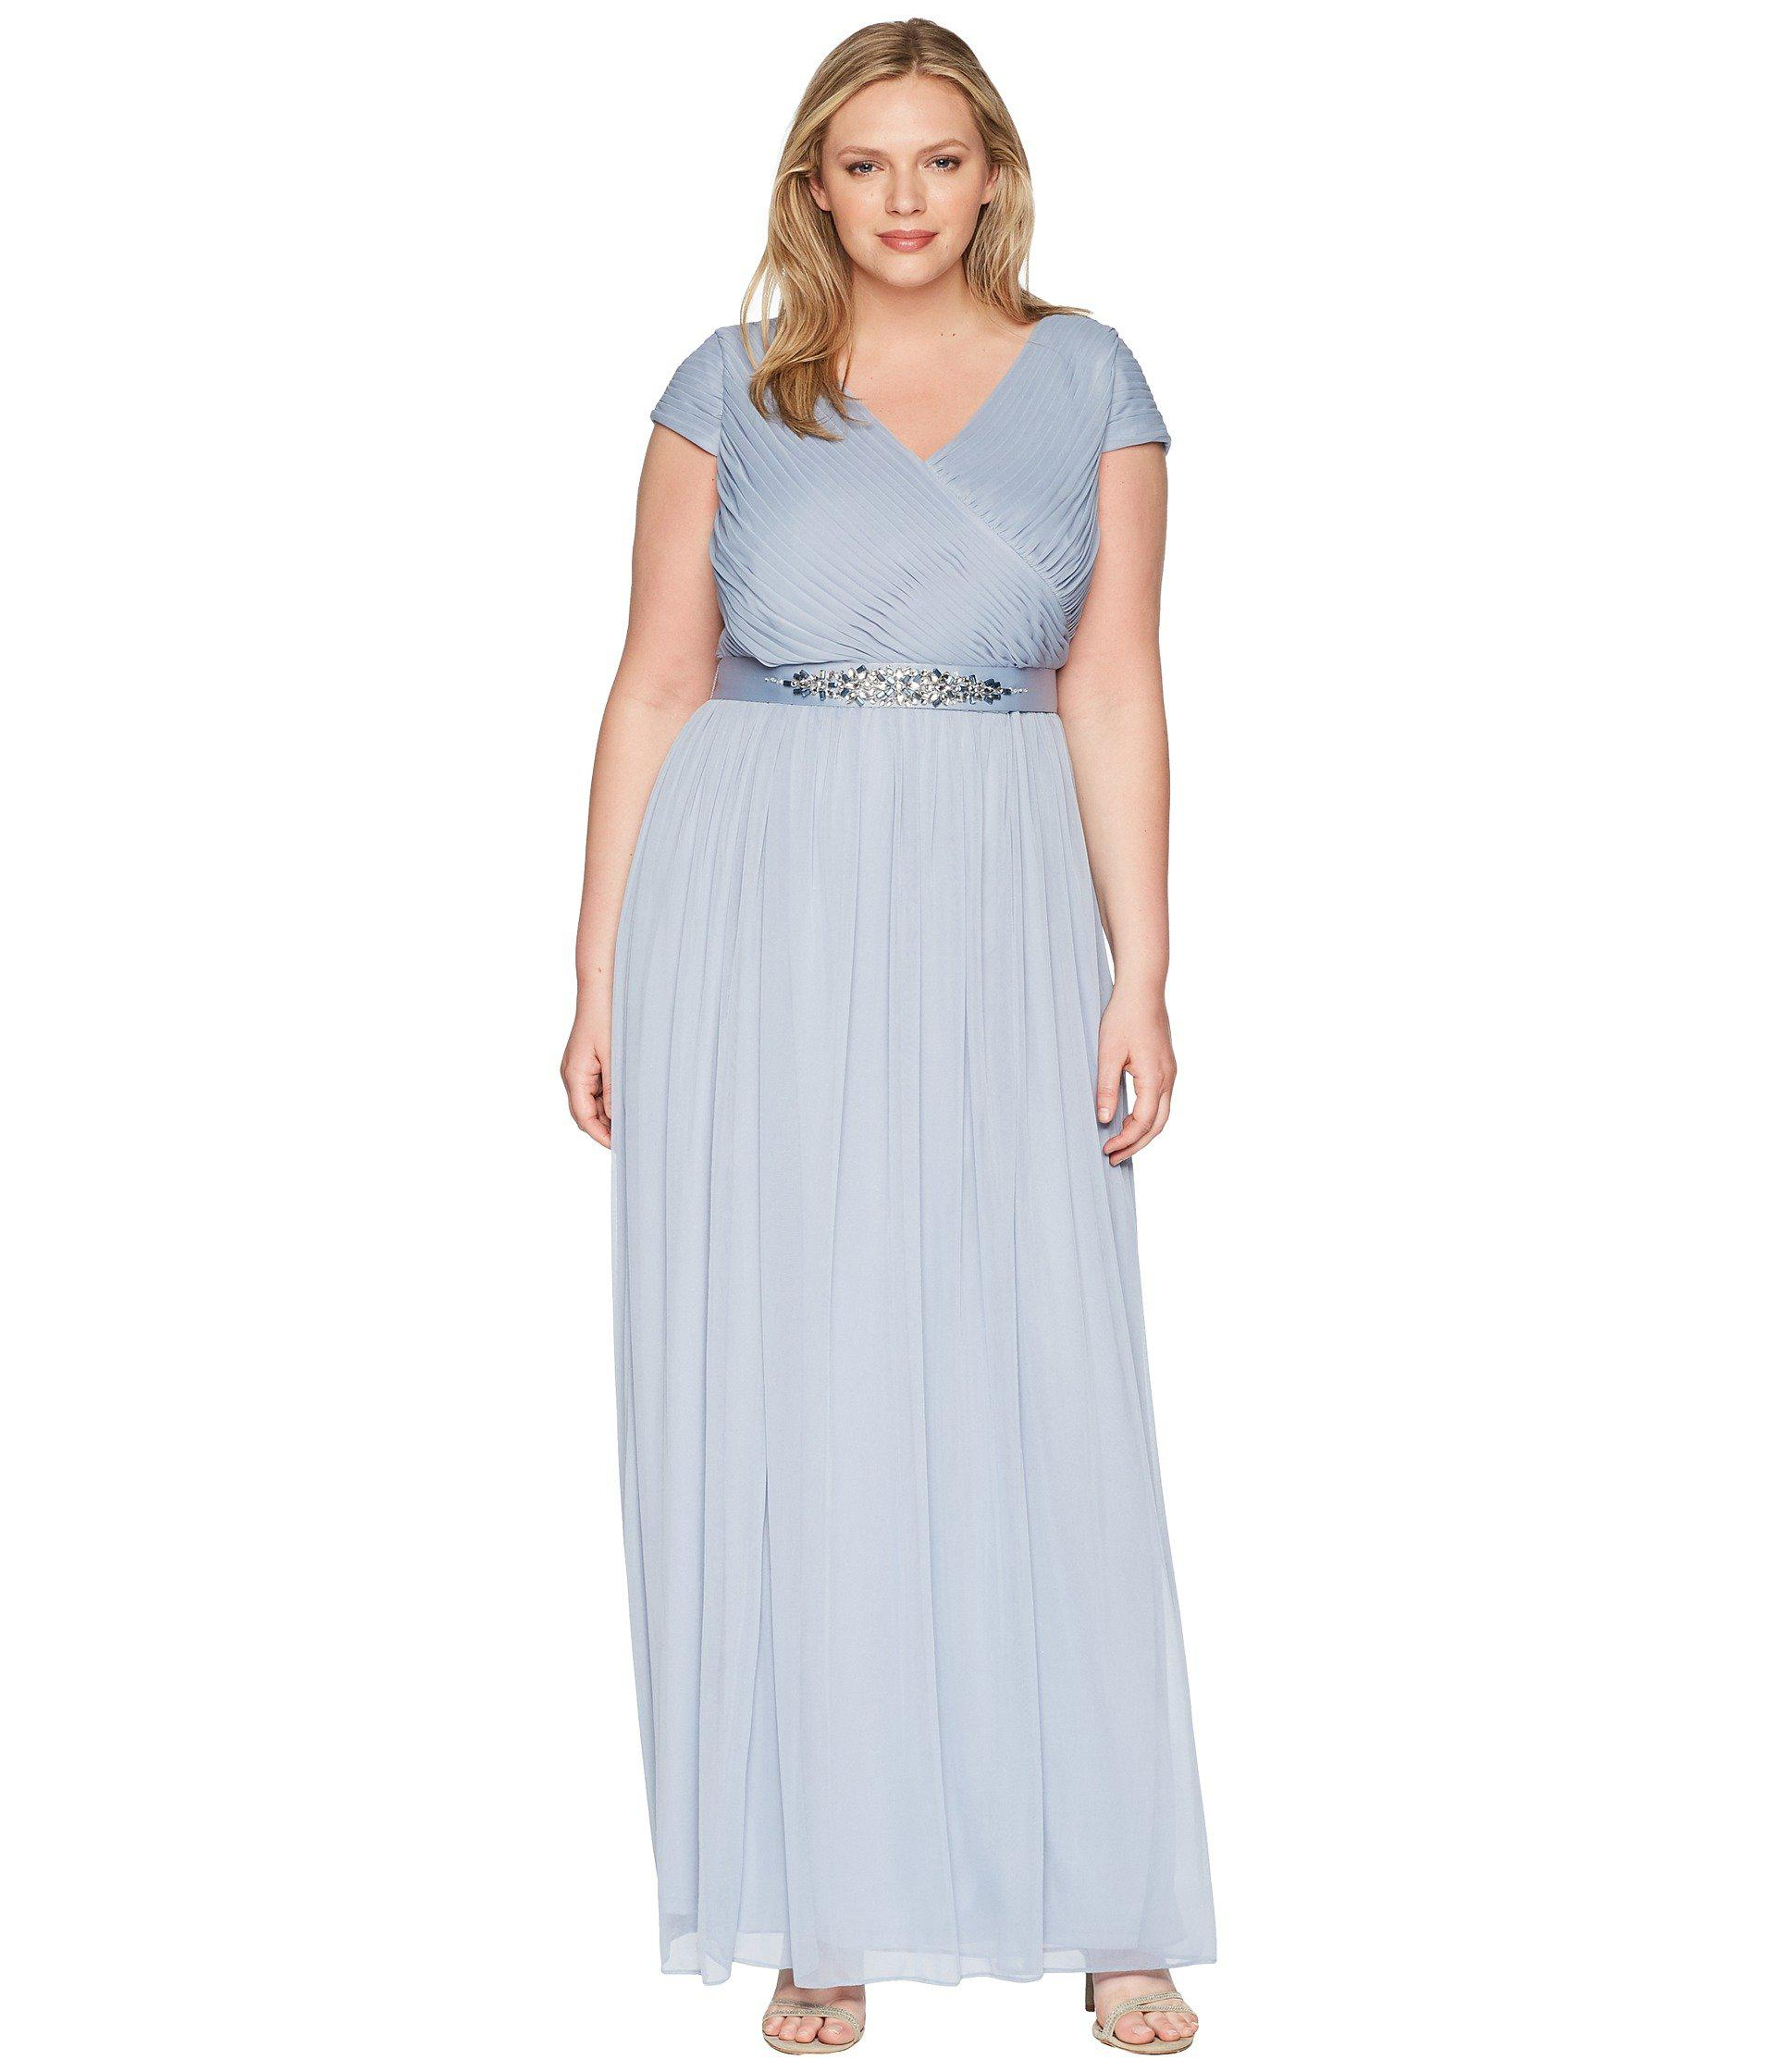 017b45286df4e Lyst - Adrianna Papell Plus Size Long Shirred Dress in Blue - Save ...